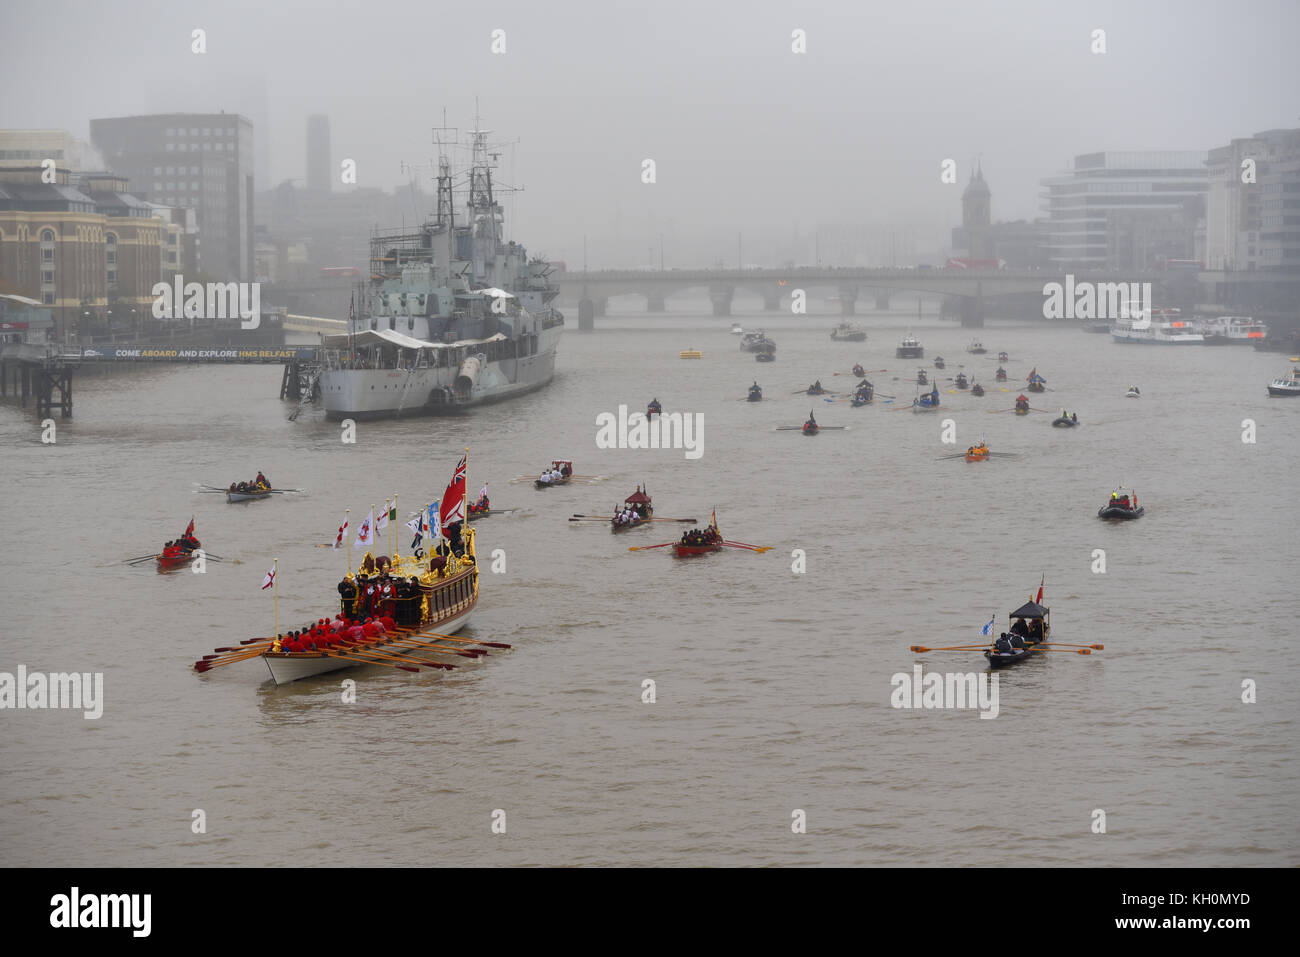 London's new Lord Mayor Charles Bowman traveled aboard the Queen's Rowbarge Gloriana accompanied by a flotilla of - Stock Image